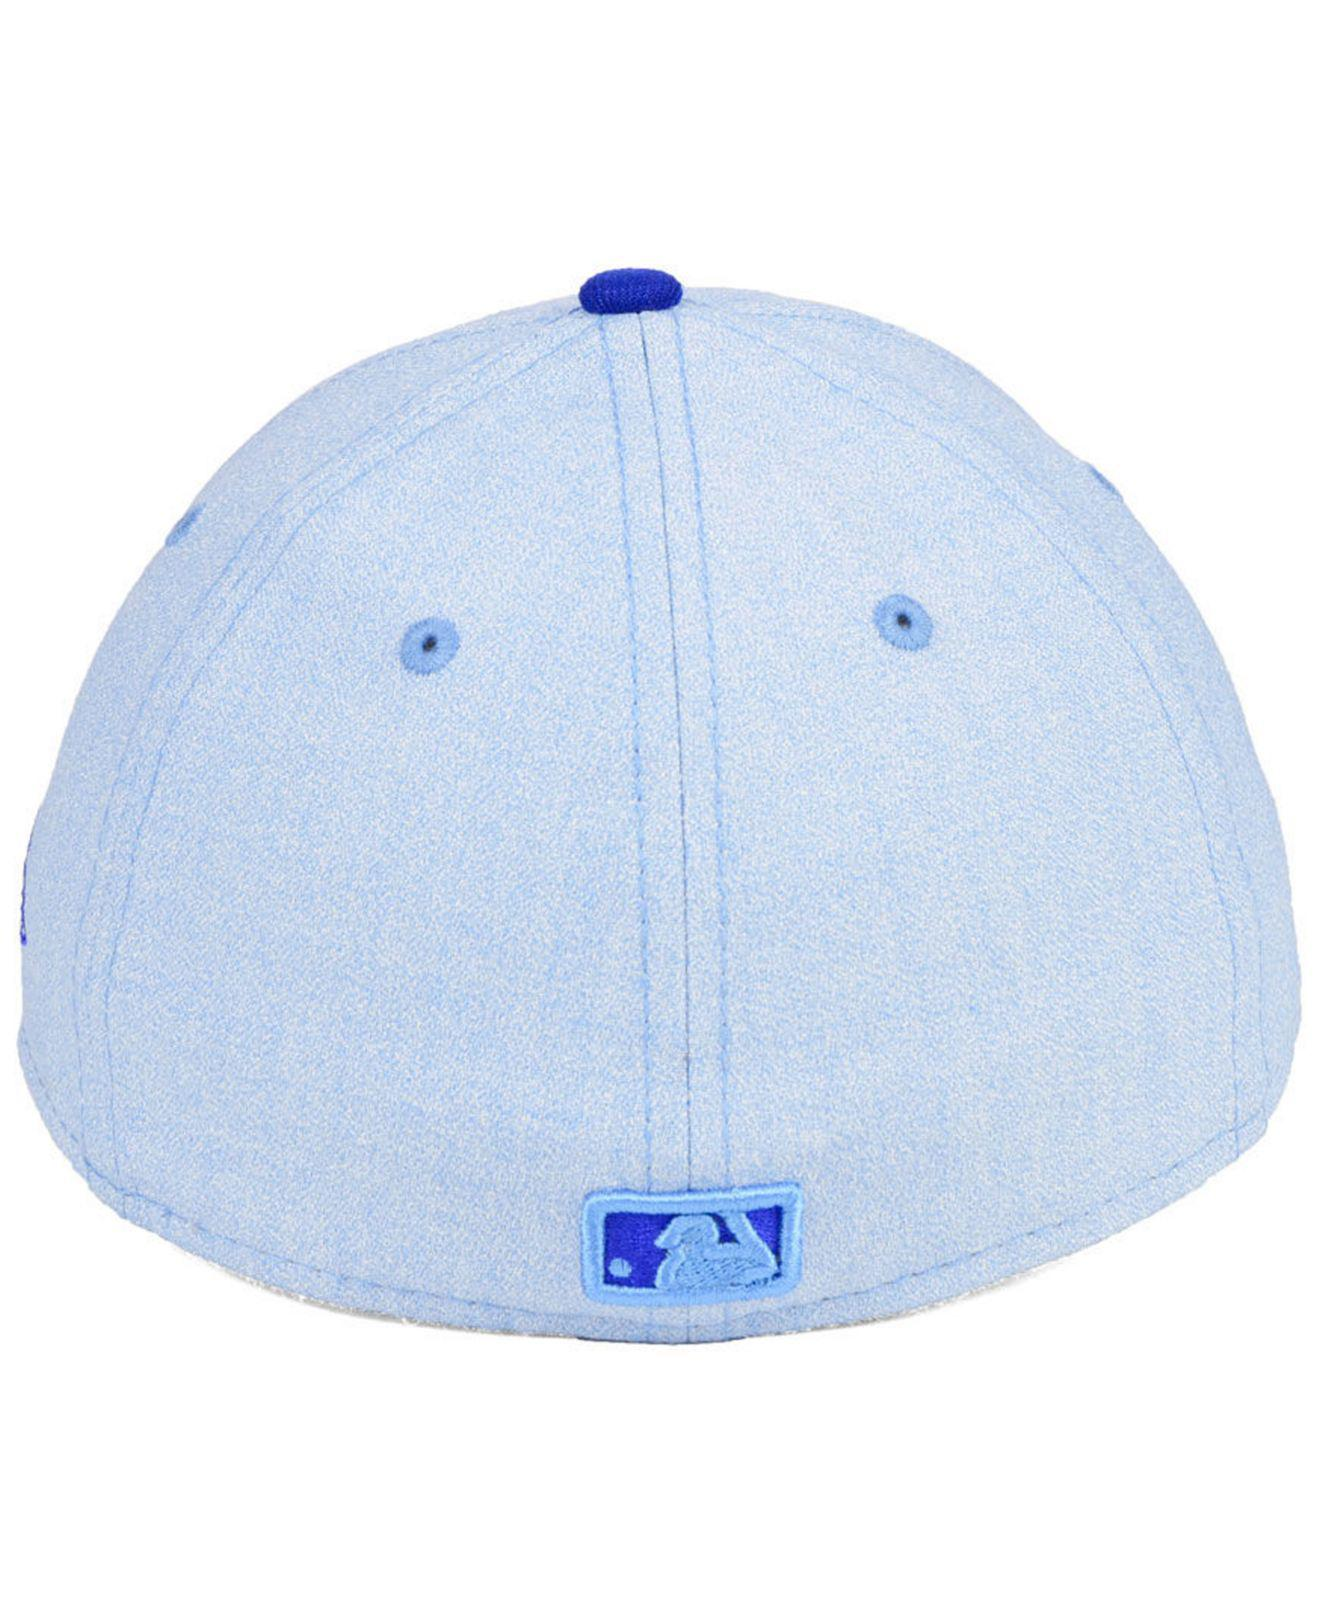 6575d99a36a69 ... official store new york mets fathers day low profile 59fifty cap for  men lyst. view